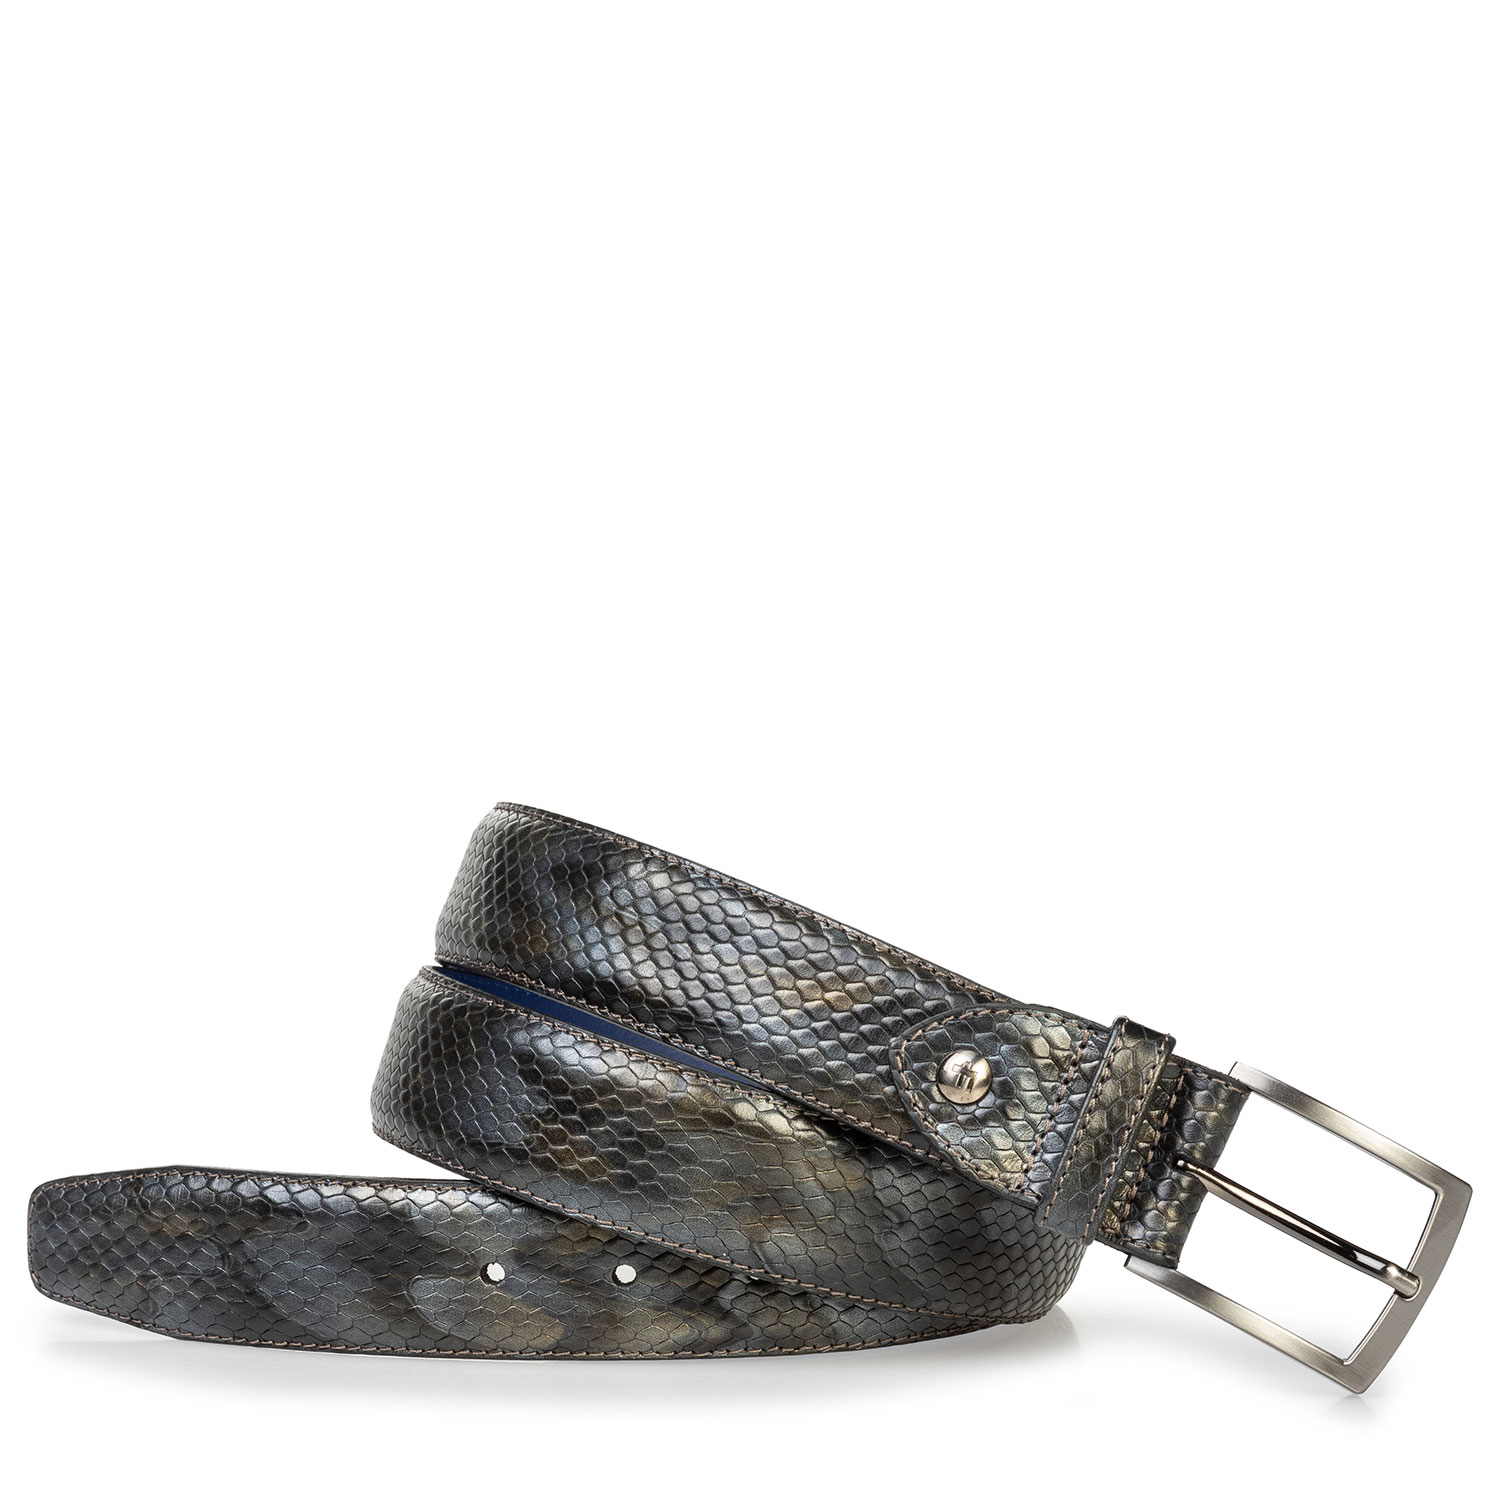 75203/49 - Leather belt metallic grey